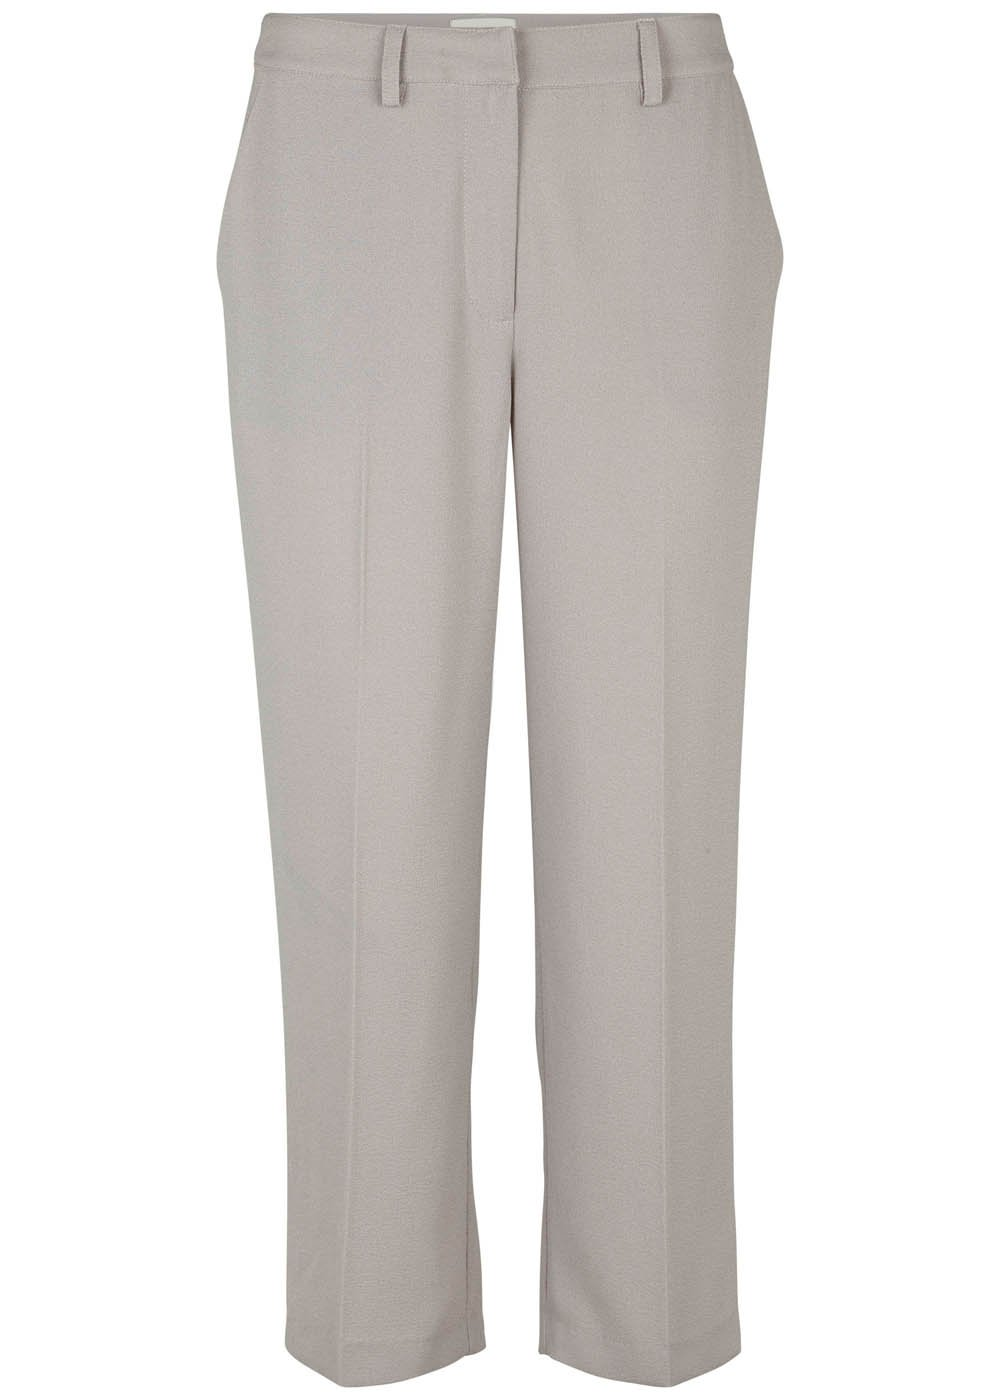 Fellow Cropped Pants - Light Grey